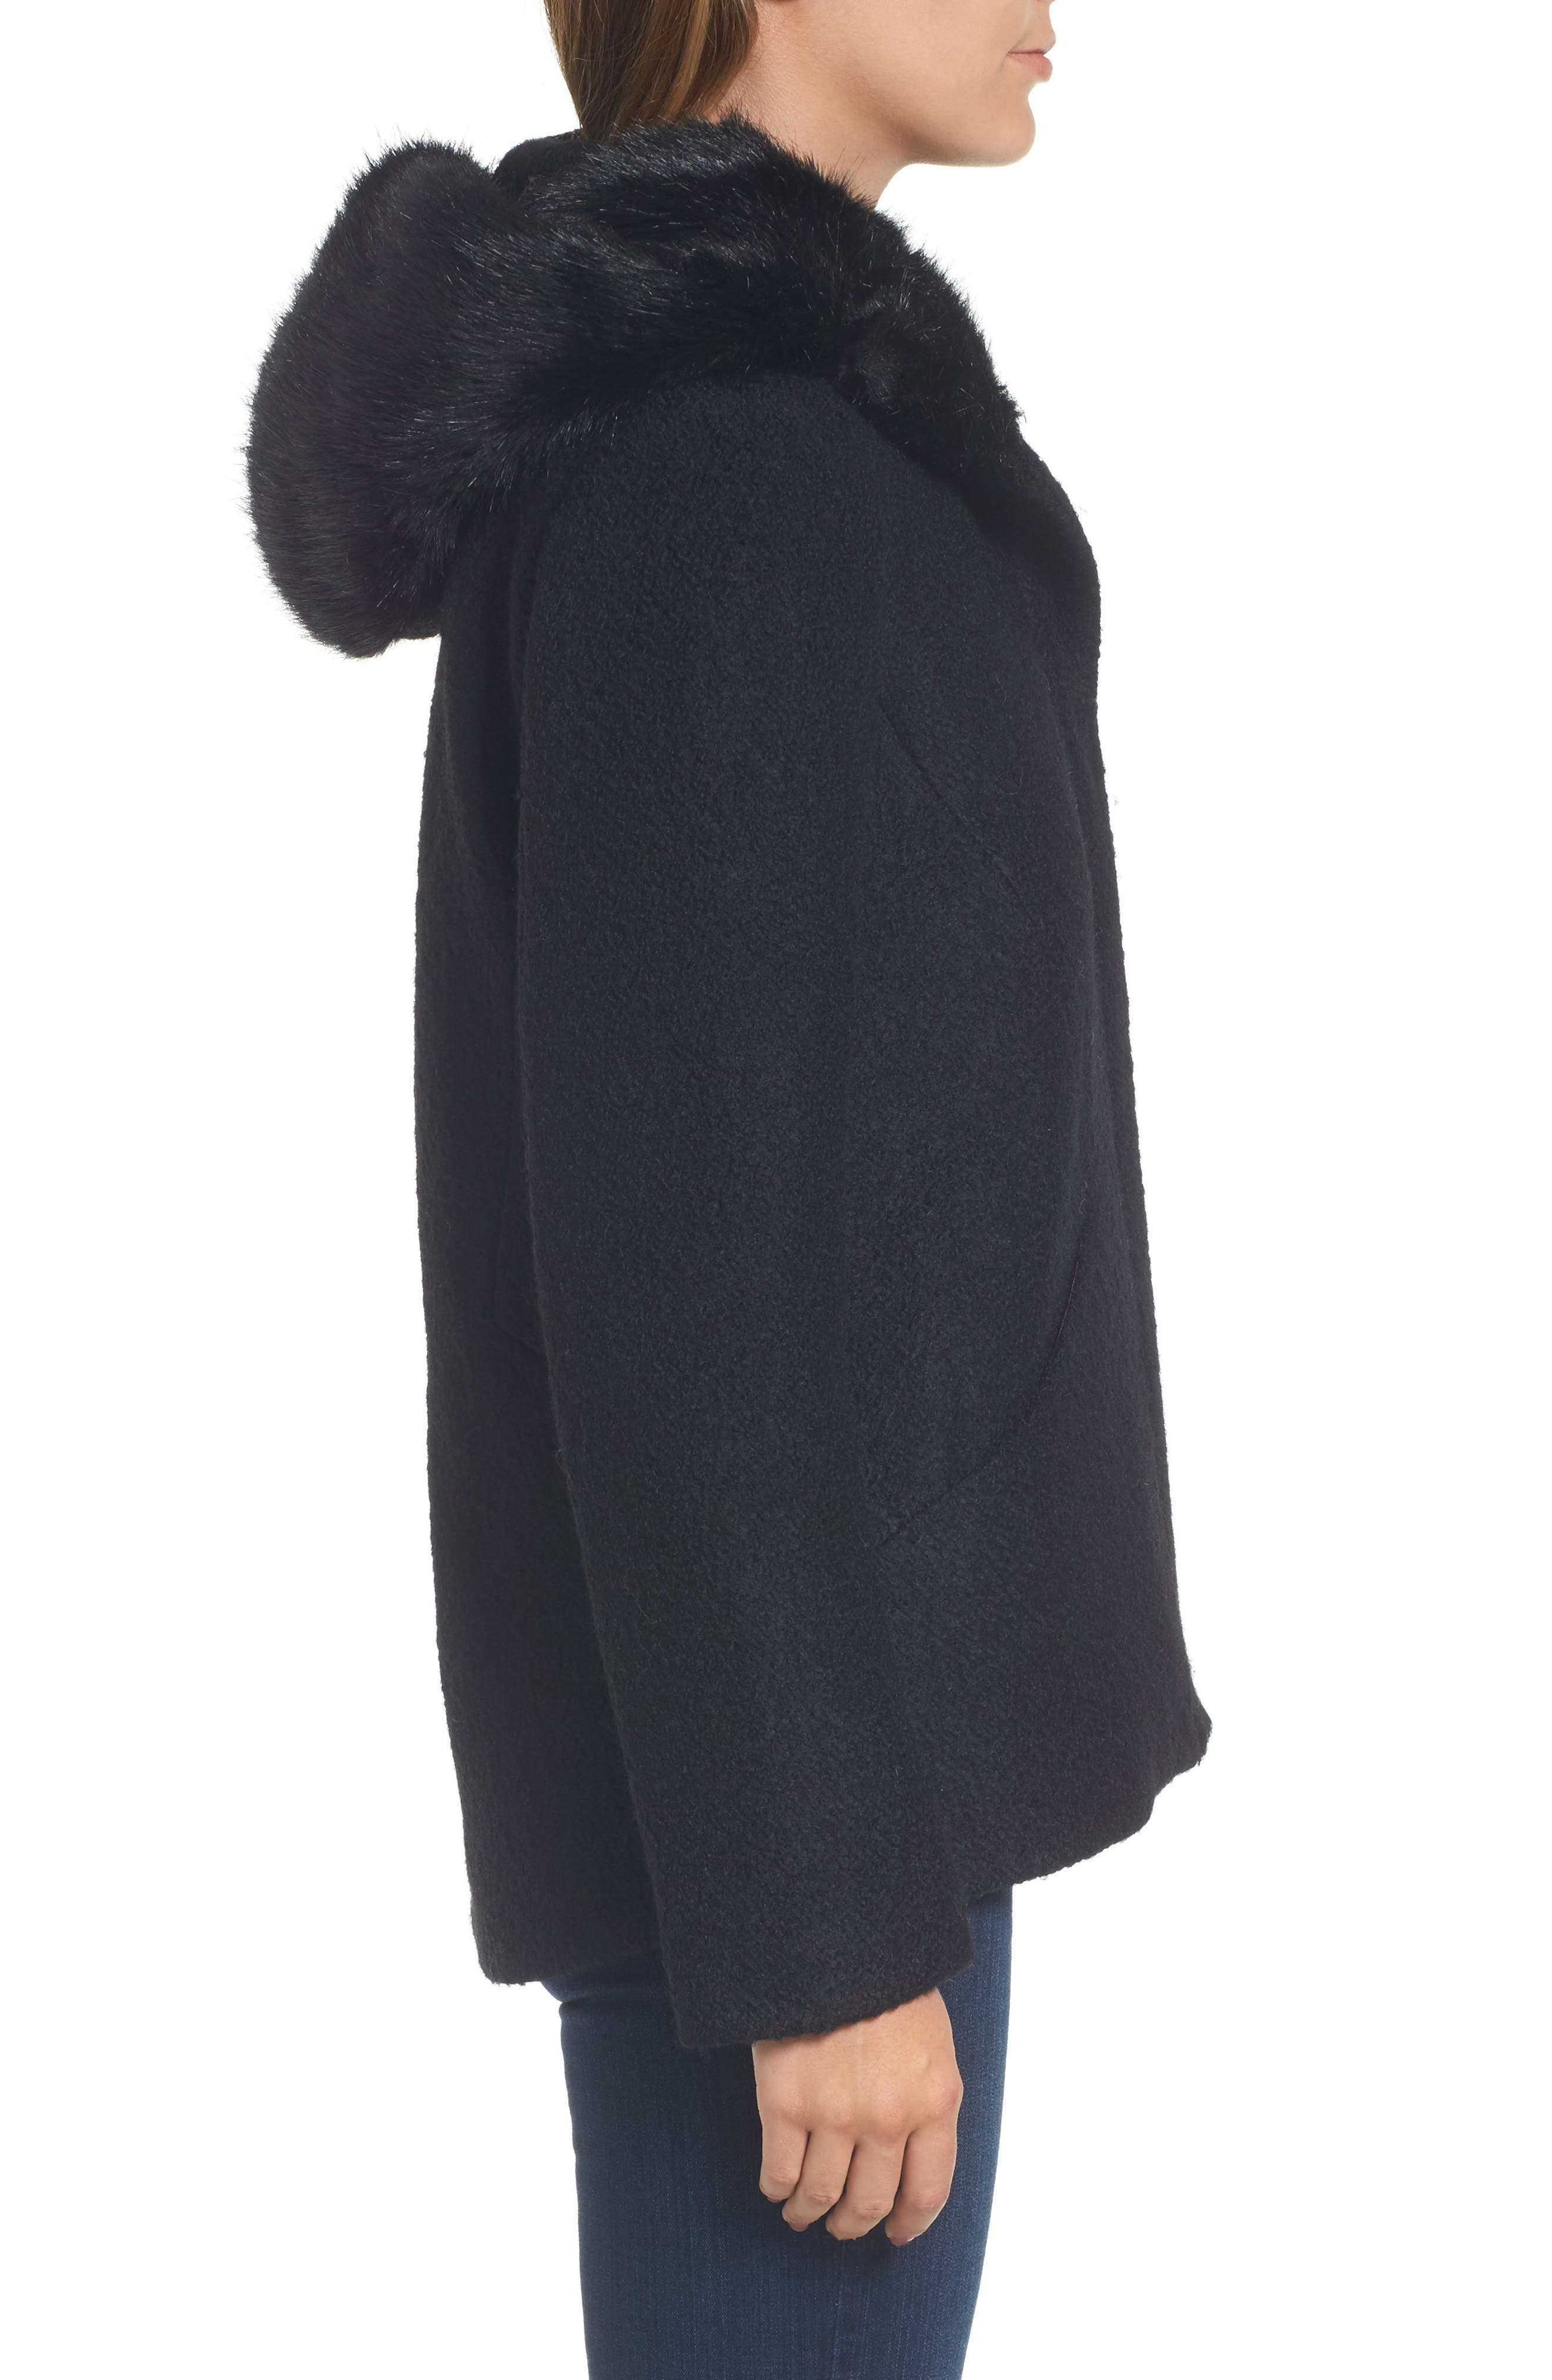 Alternate Image 3  - Laundry by Shelli Segal Hooded Wool Blend Bouclé Jacket with Faux Fur Trim